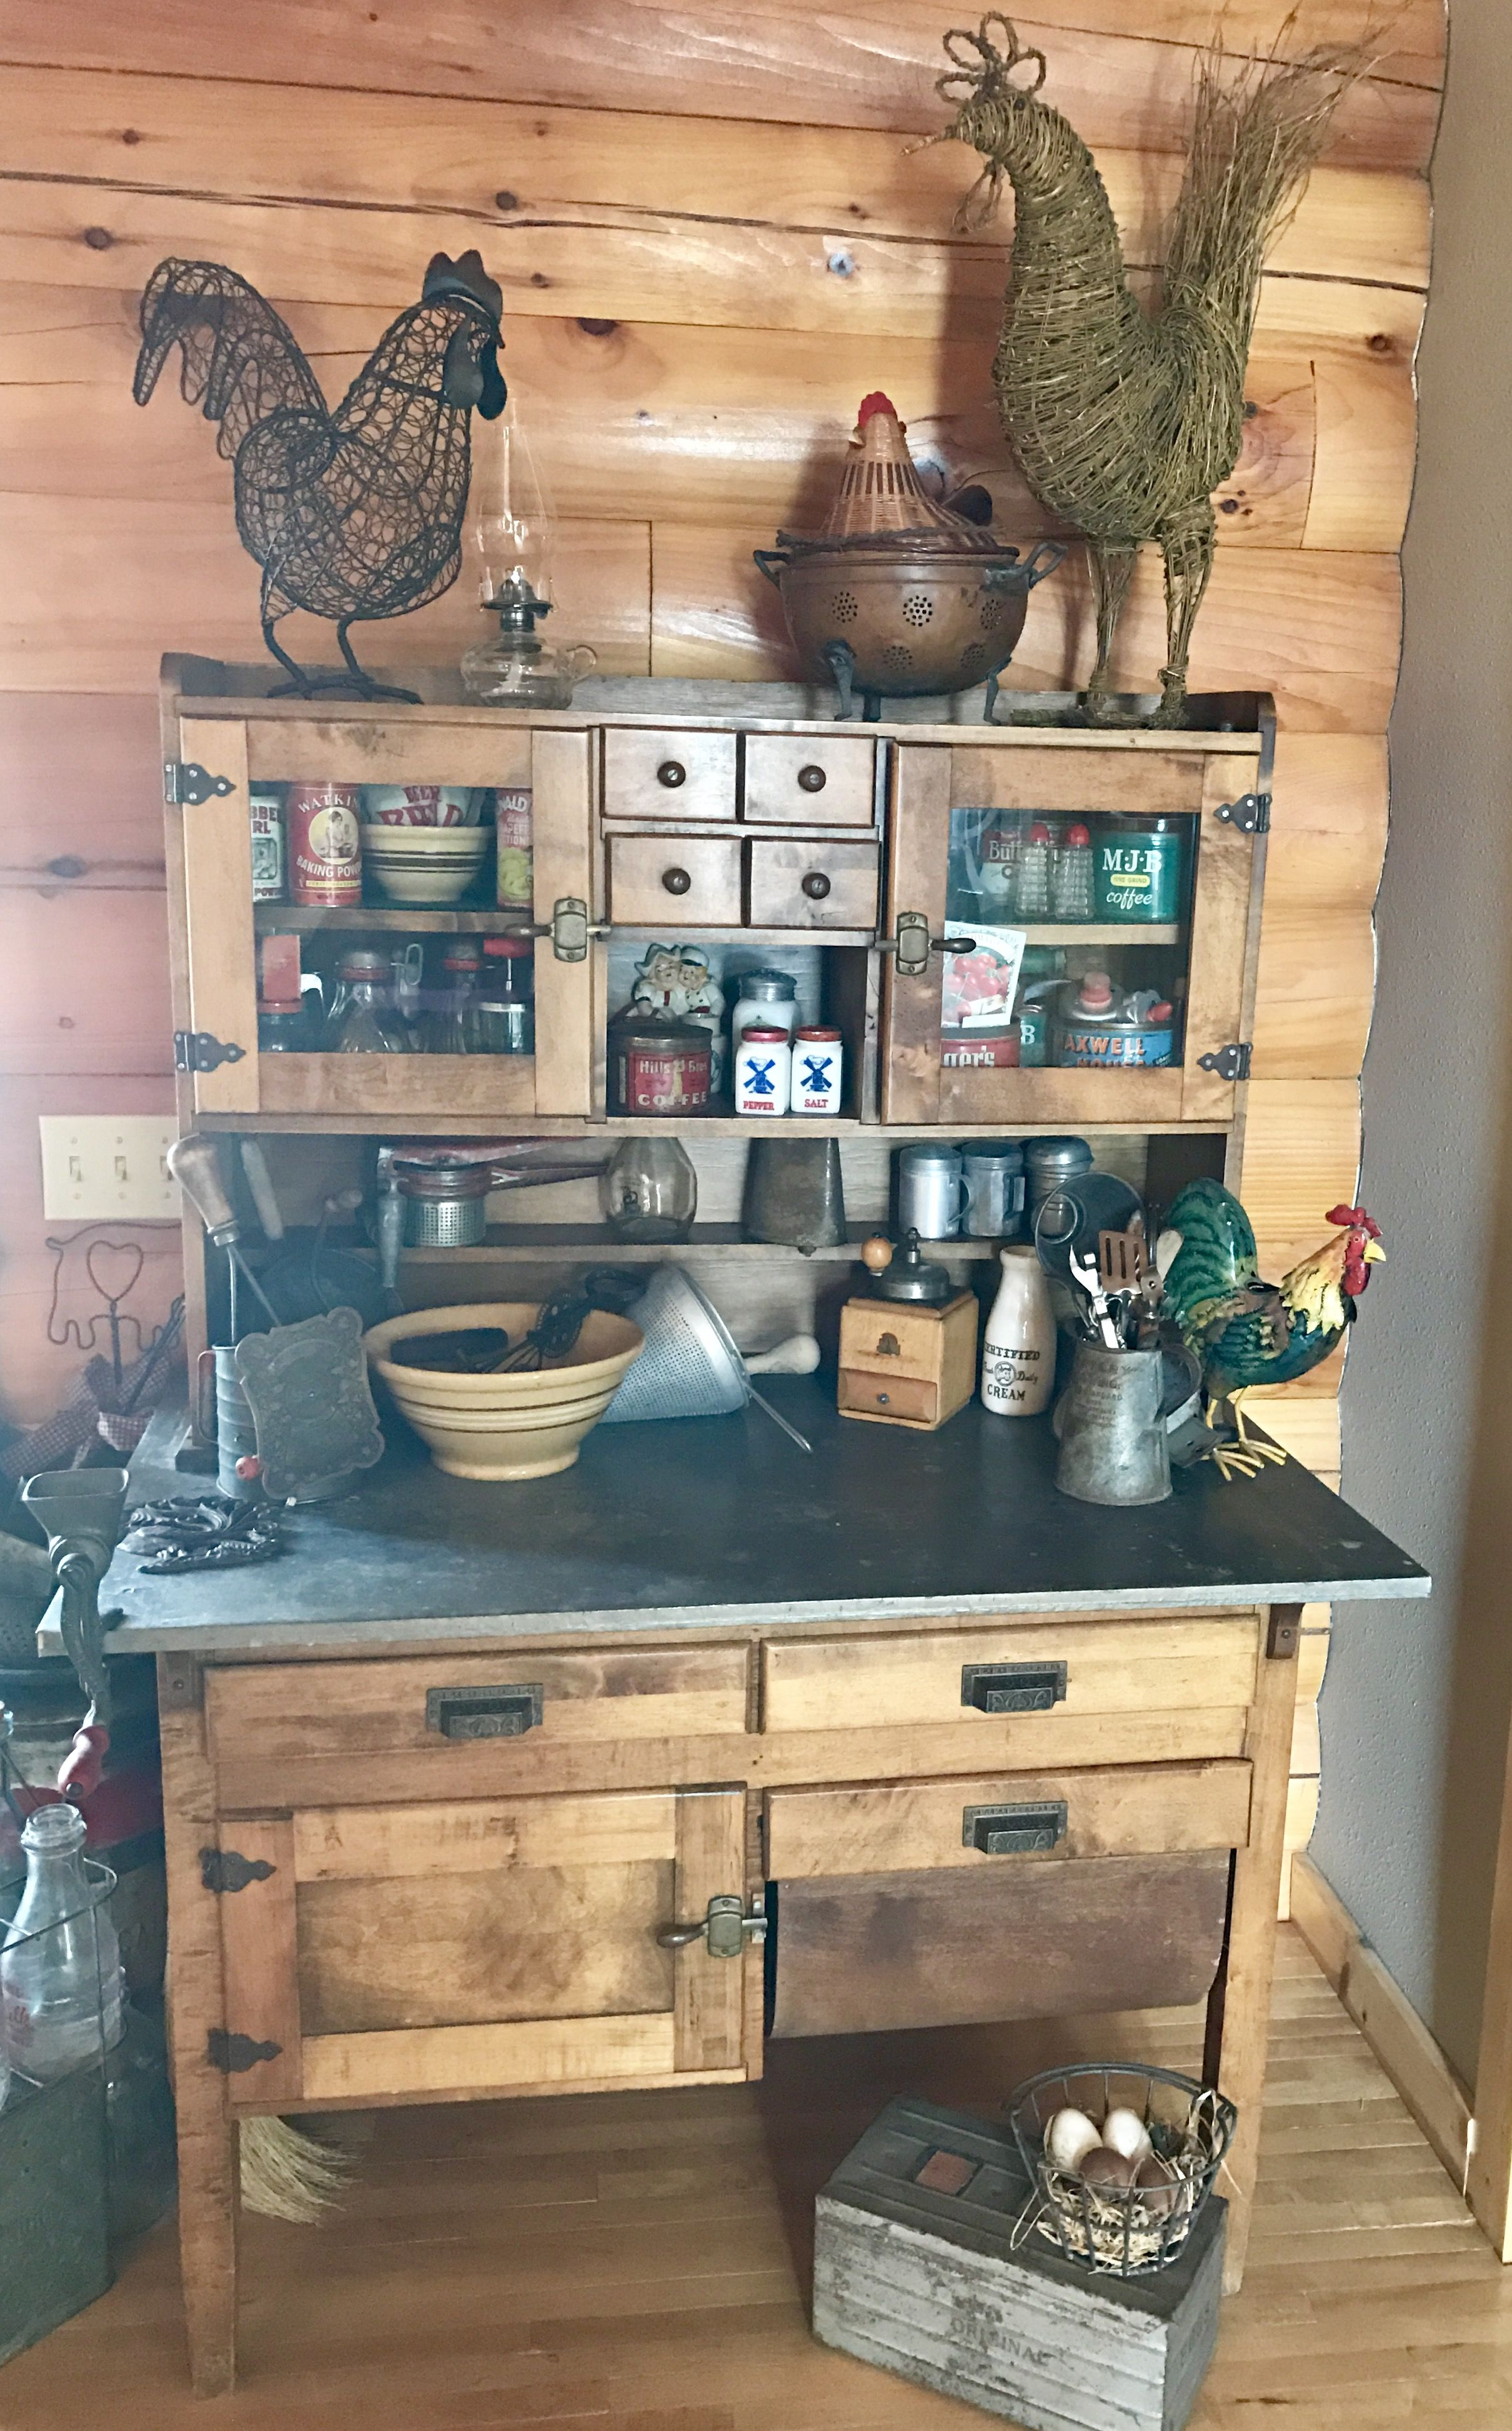 Hoosier Home Sweet Home | Primitive Kitchens | Pinterest | Primitive on stylish eve home designs, retro home designs, affordable home designs, 2015 home designs, complex home designs, antique home designs, two story home designs, popular home designs, home decor designs, exotic home designs, wild home designs, contemporary home designs, kitchen designs, native home designs, unusual home designs, zero home designs, nigerian home designs, primative designs, wood home designs, ancient home designs,